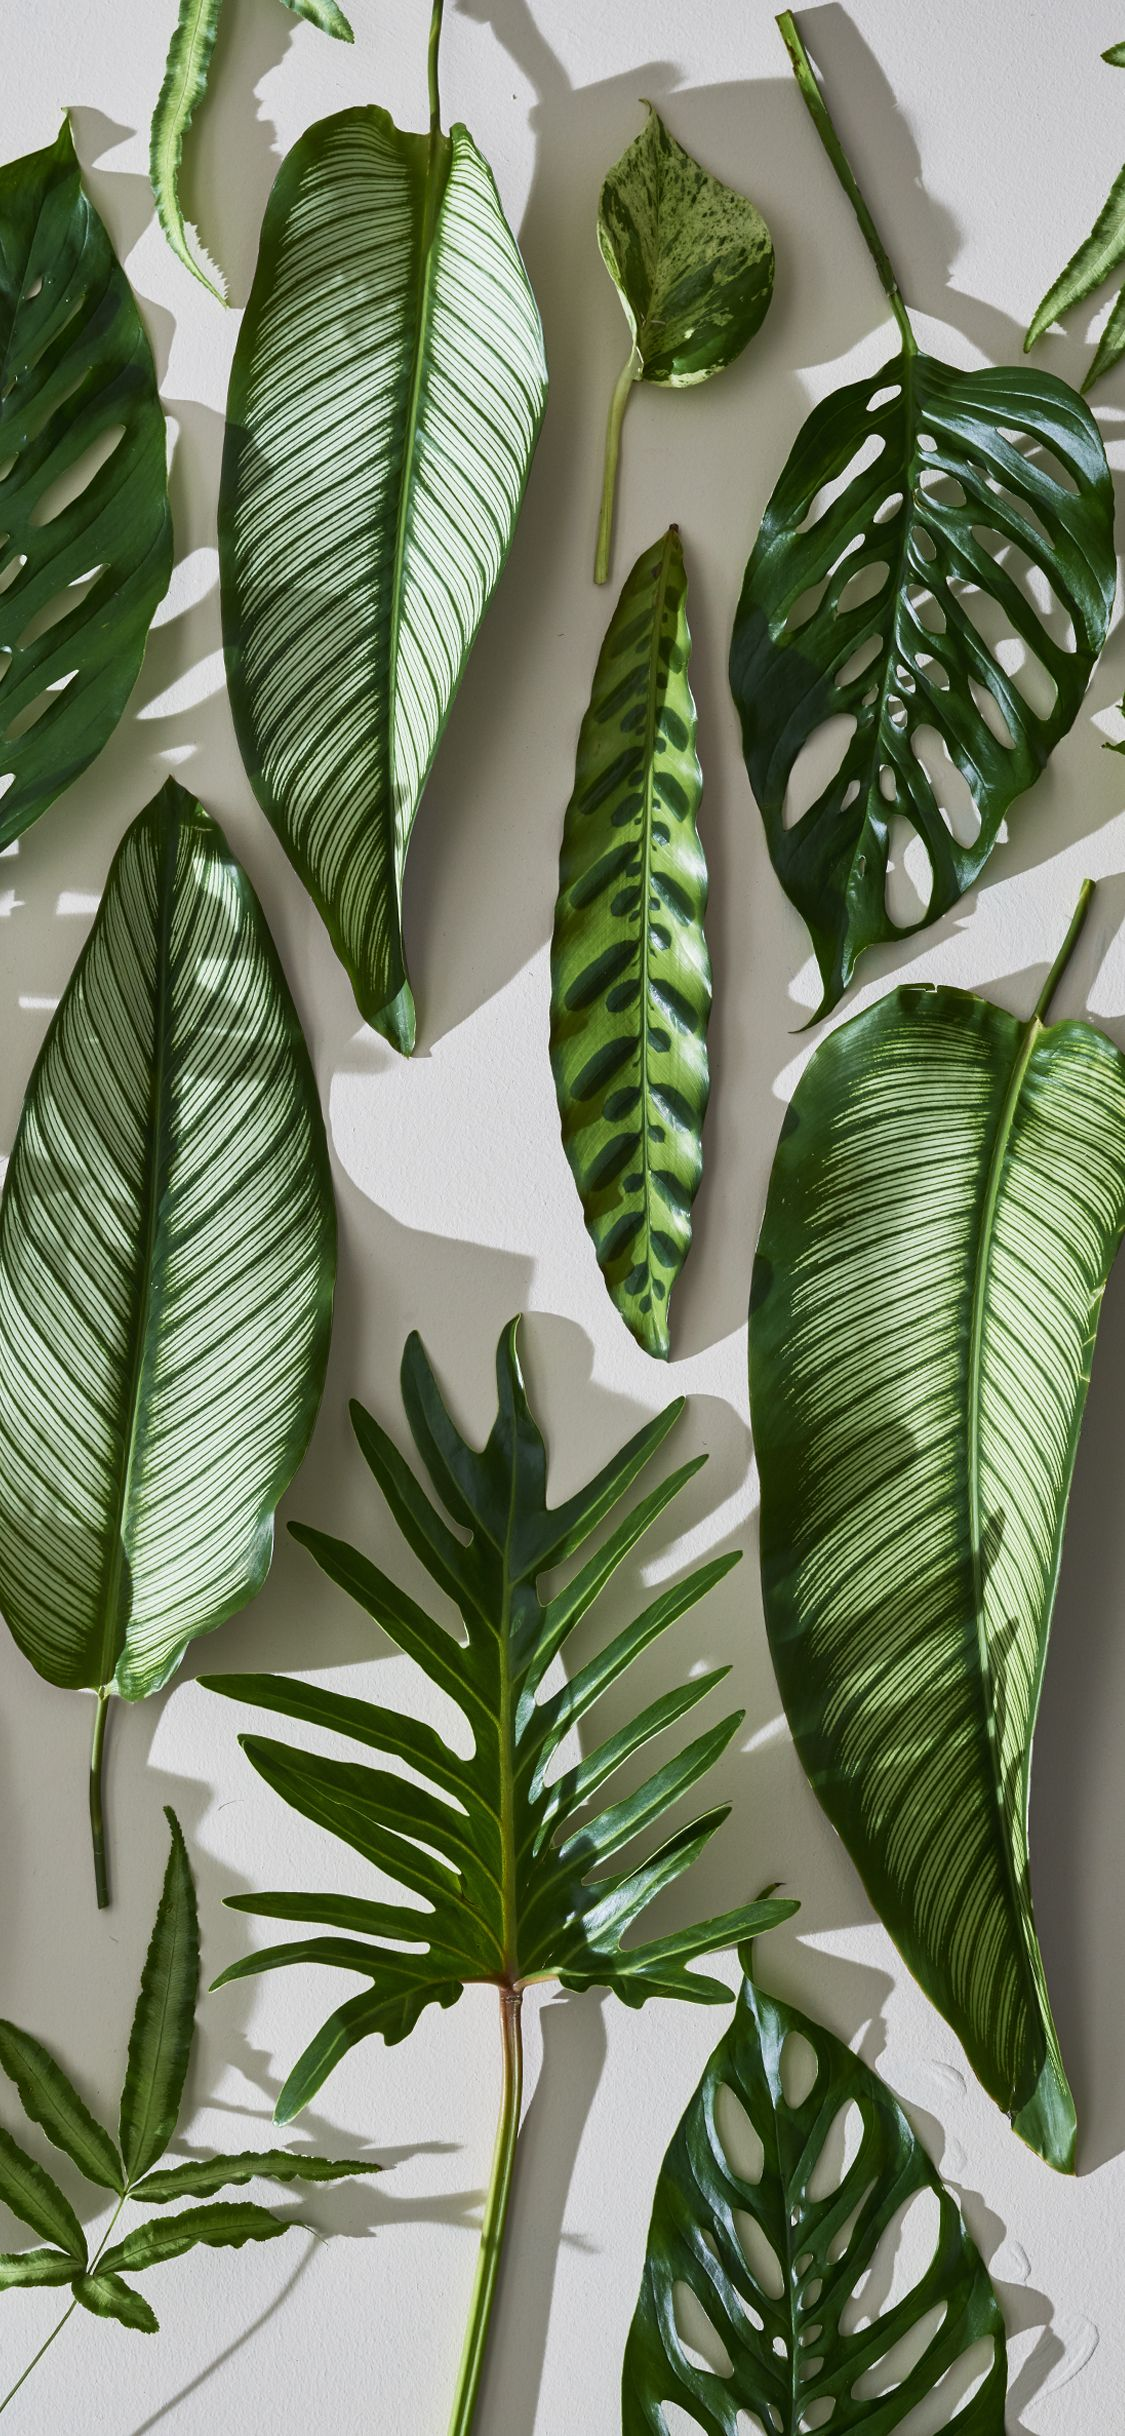 Pin by Graz on To save | Plants, Plant wallpaper, Flowers